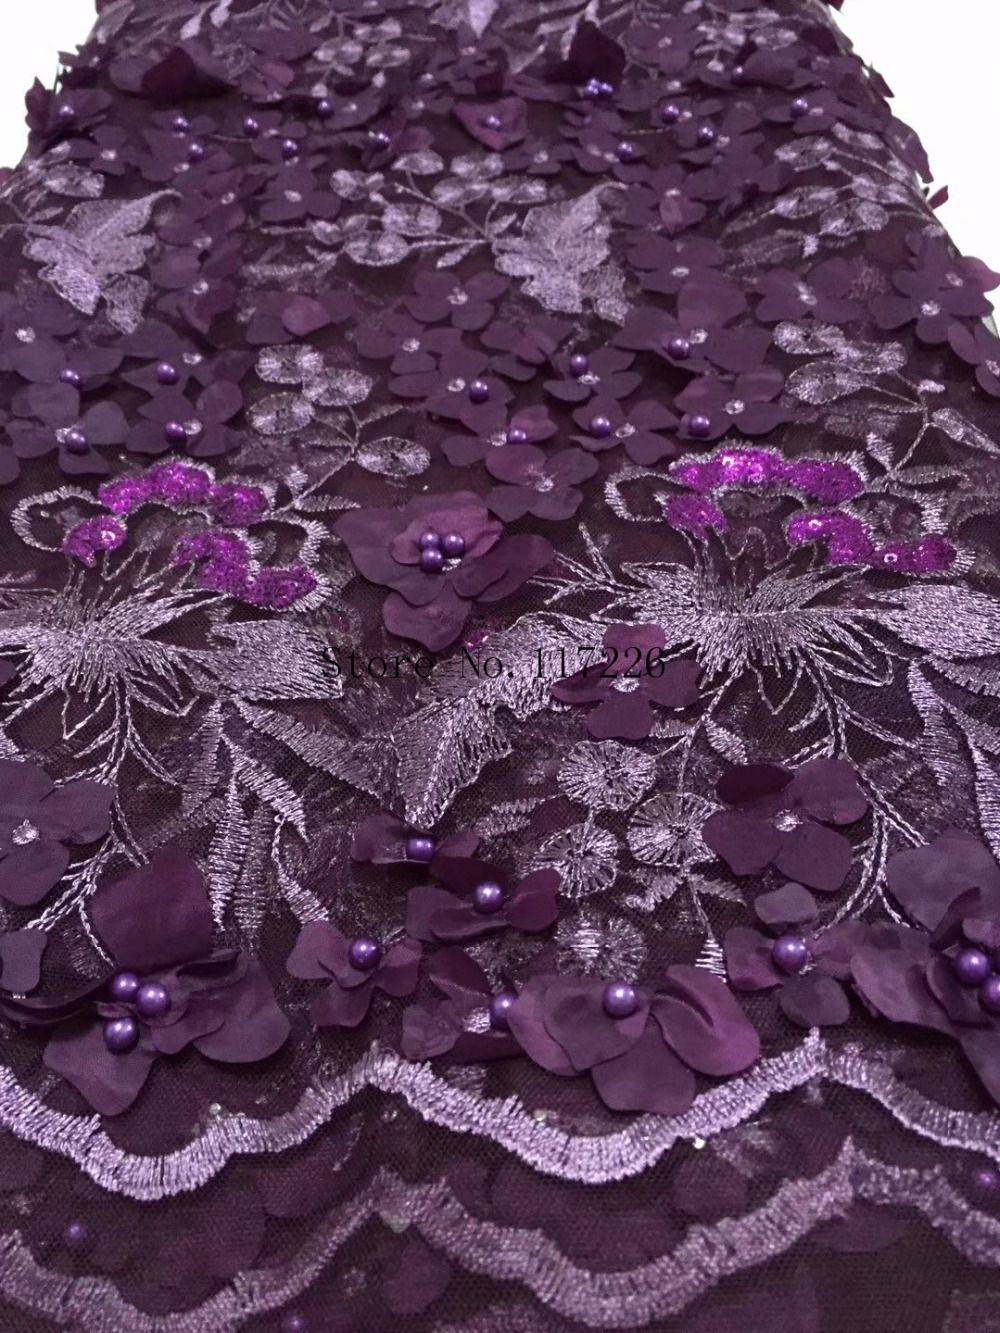 7680a3059a4a Cheap Lace, Buy Directly from China Suppliers:Dark Purple french material  for women dress 3D appliqued tulle lace fabric Embroidered net french lace  fabric ...